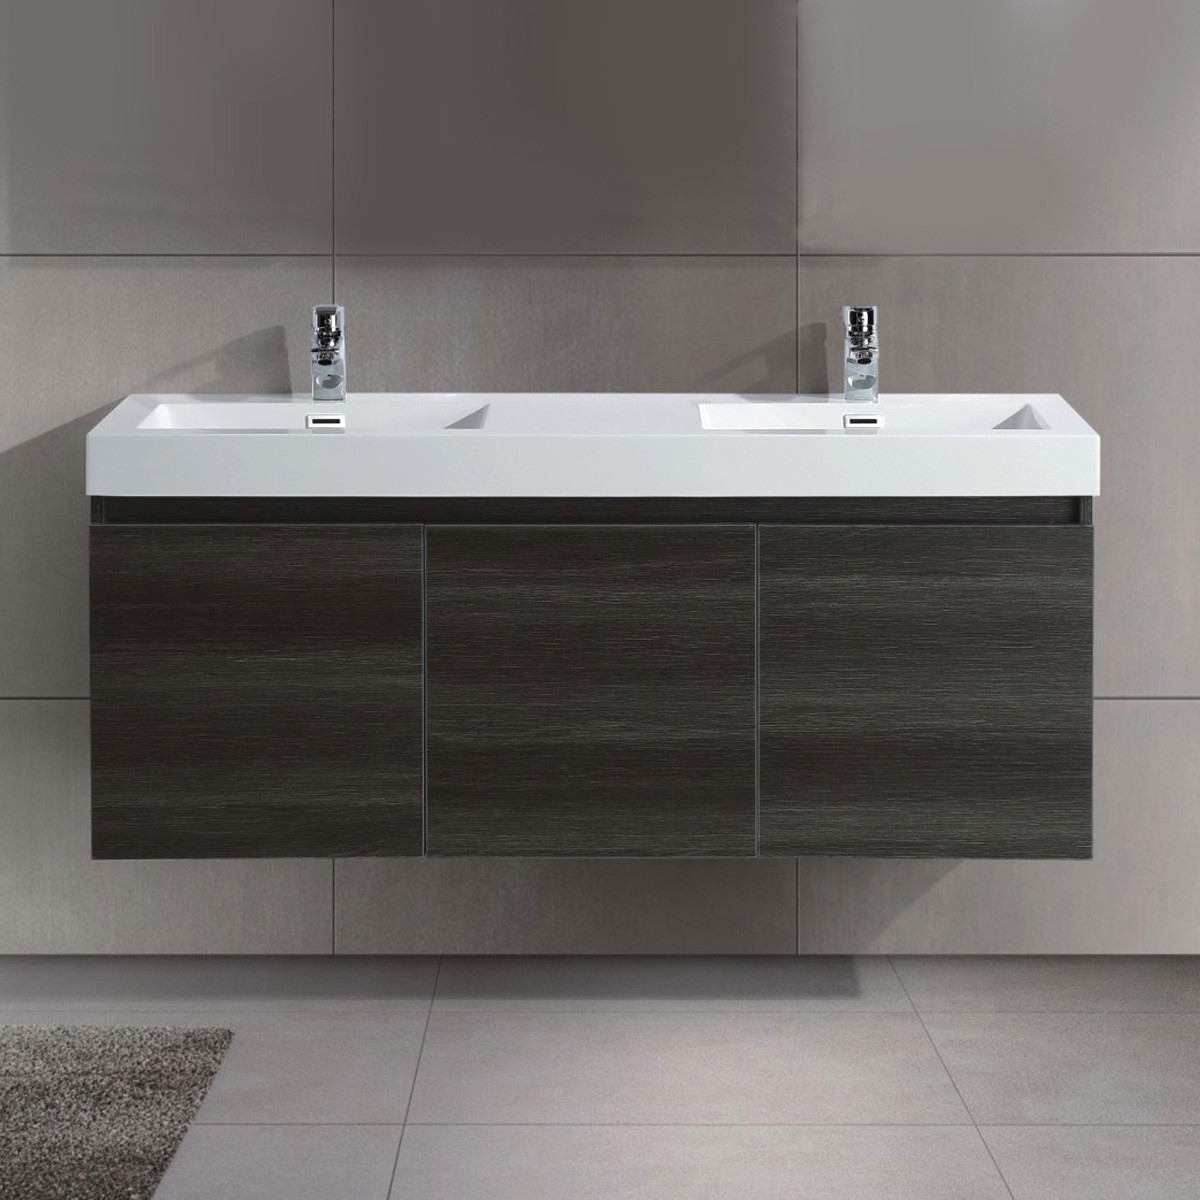 54 In. Wall Mount Vanity with Double Basin (JD054-V)